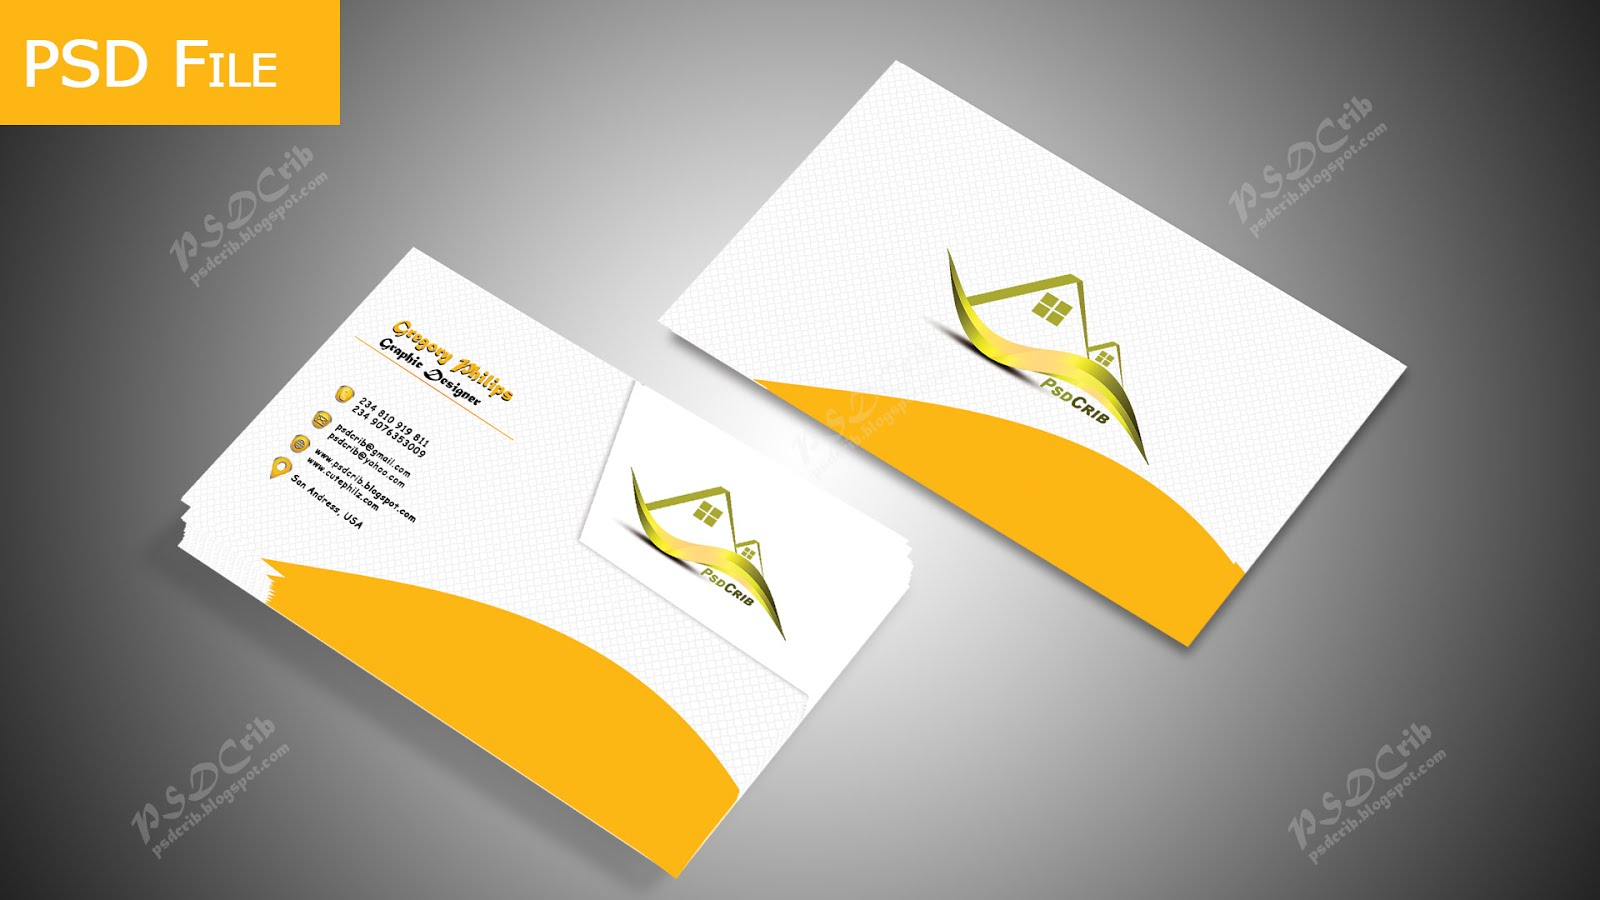 Elegant nice orange business card psd crib creative photoshop business cards are the most basic tools for personal or business use and are ideal for exchanging contact information customize yours to suit your needs magicingreecefo Image collections